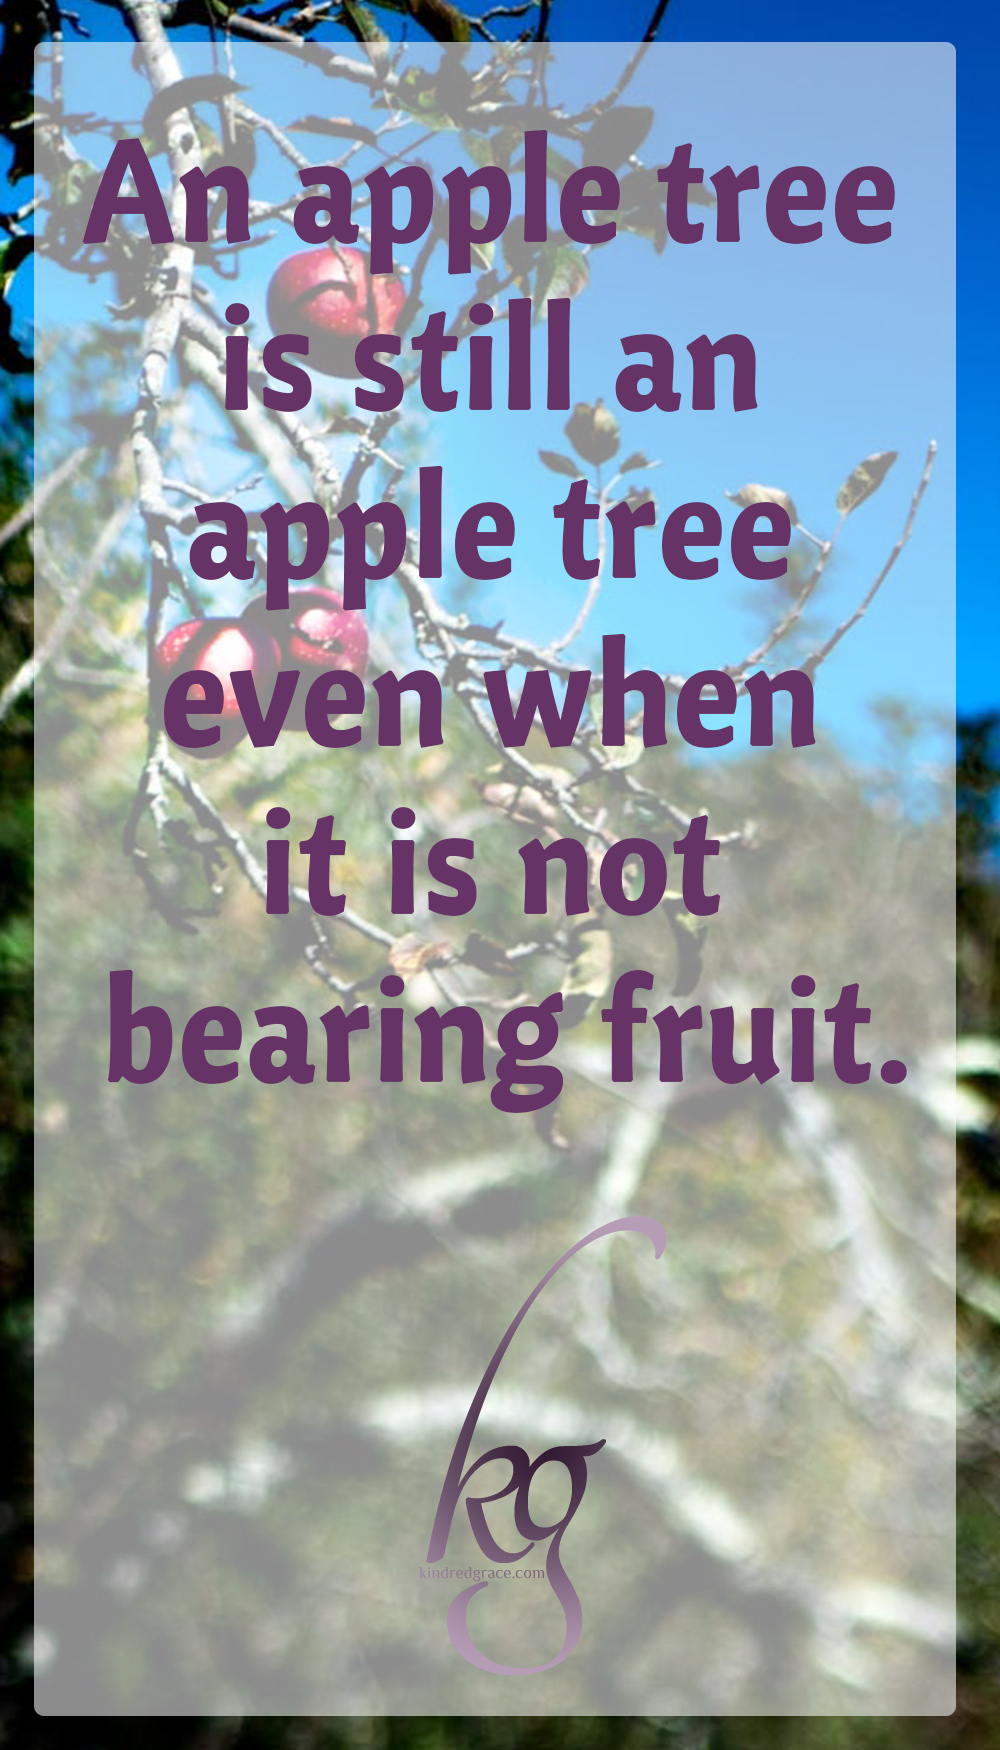 The apple tree is not merely an apple tree only when bearing fruit. Its identity remains the same in that long dormant season the Lord intended for maturation, as in the ordained time of fruit-bearing. via @KindredGrace